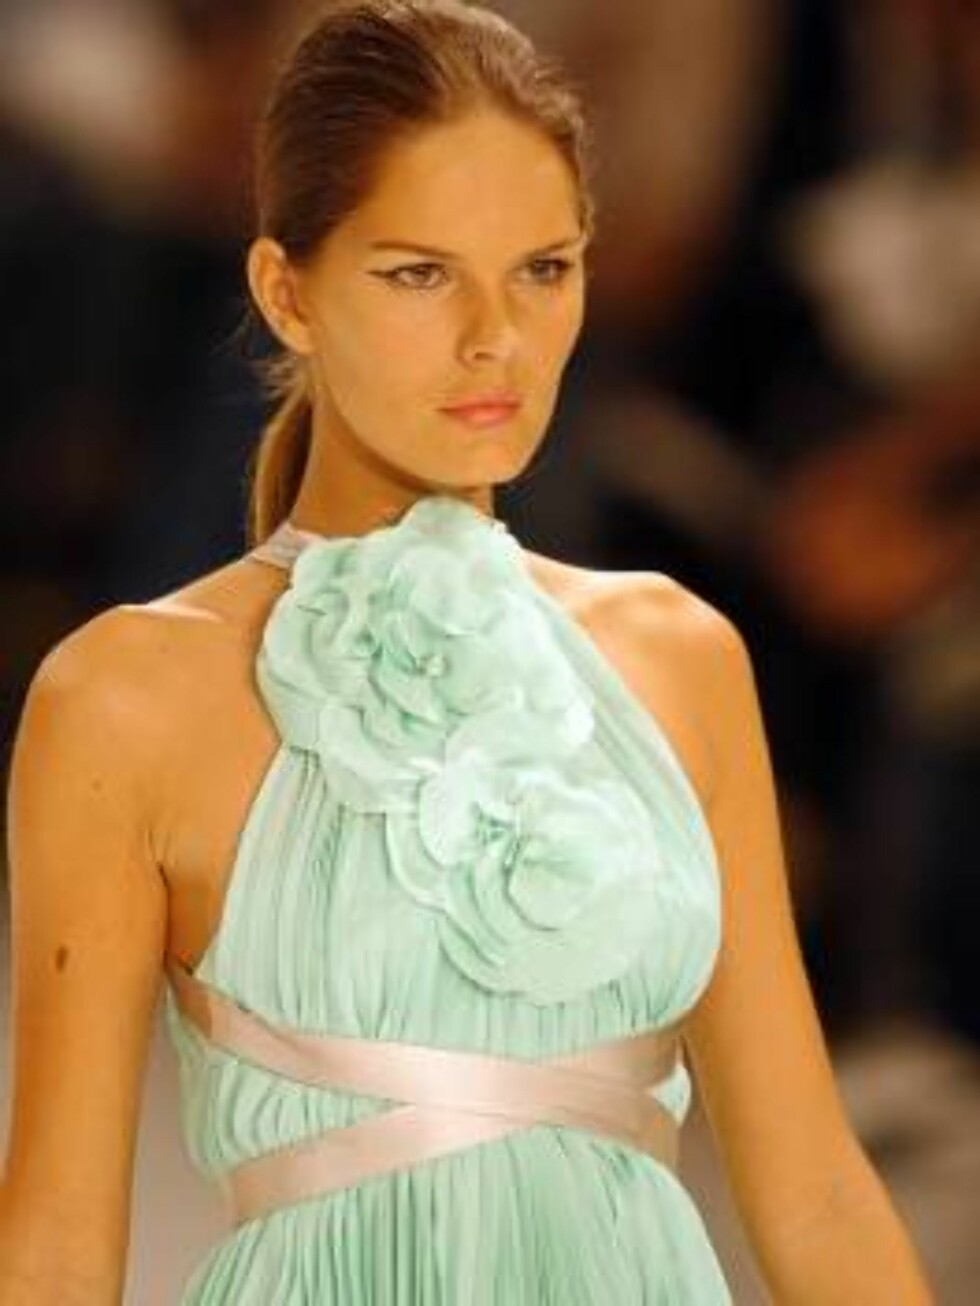 A model shows a design of  Forum's collection during the Sao Paulo Fashion Week in Sao Paulo, Brazil,  Friday, July 14, 2006. (AP Photo/Andre Penner) Foto: AP